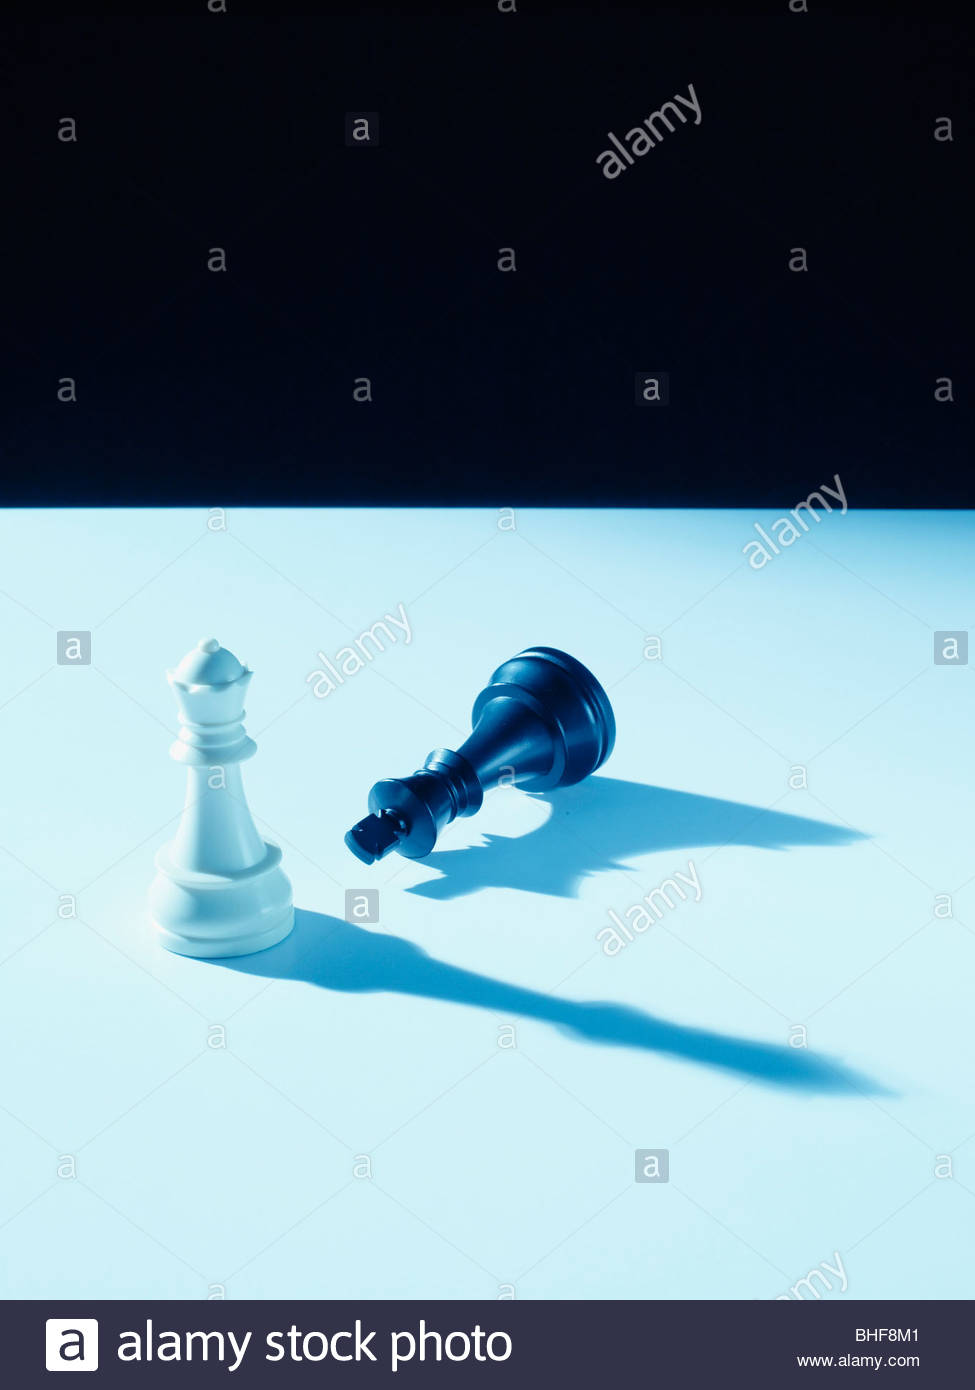 Black and white chess pieces - Stock Image